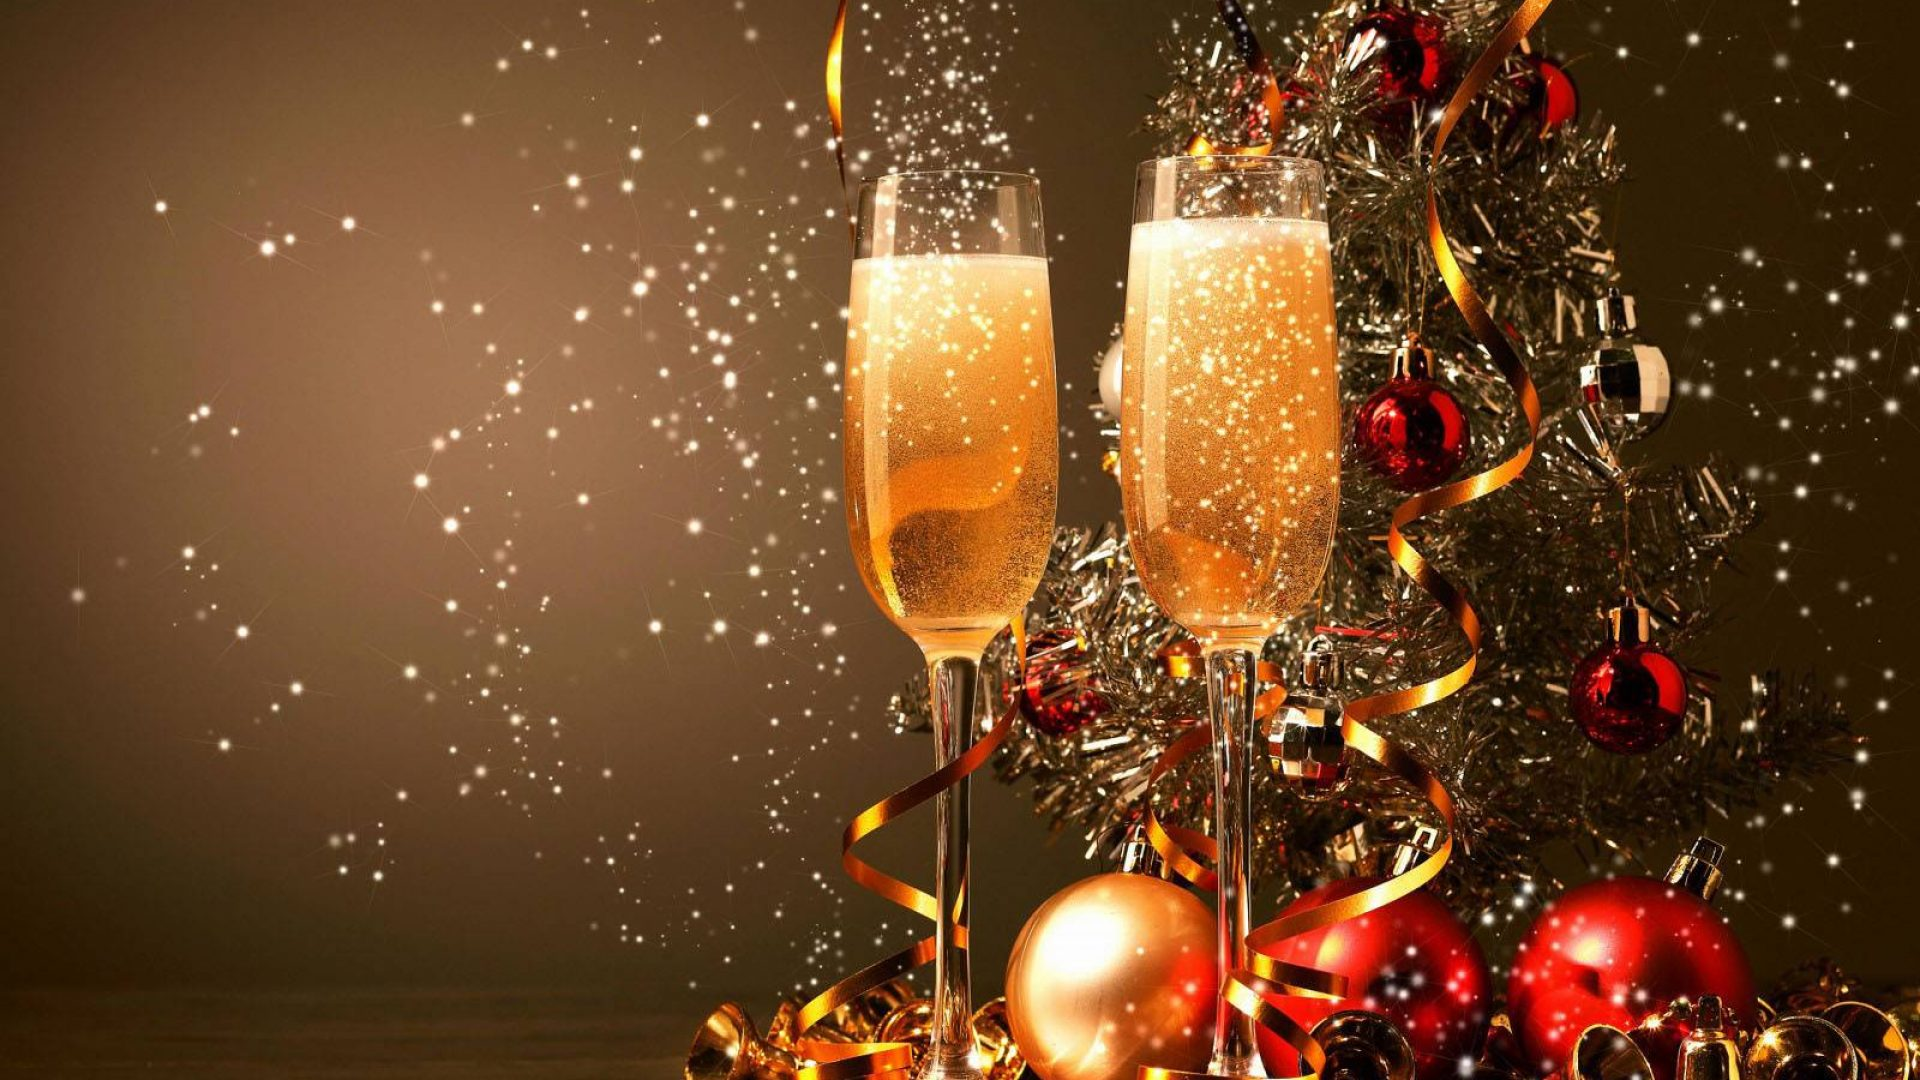 Happy New Year 2020 Glasses With Champagne For Two Decorations 1920x1080